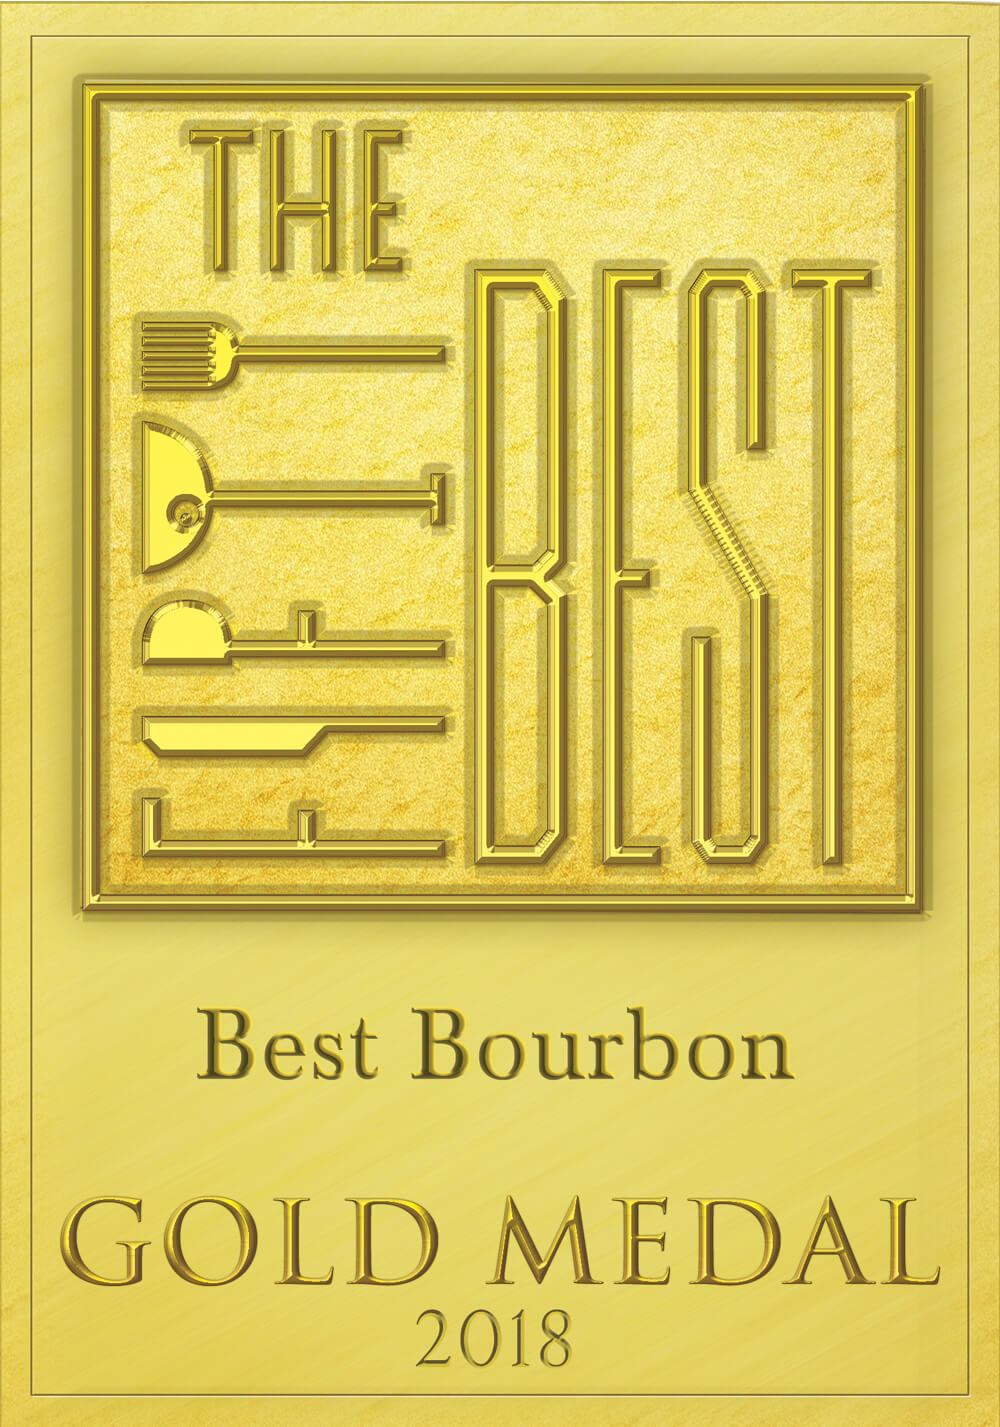 TheFiftyBest_GoldMedal_Bourbon_2018-(1)